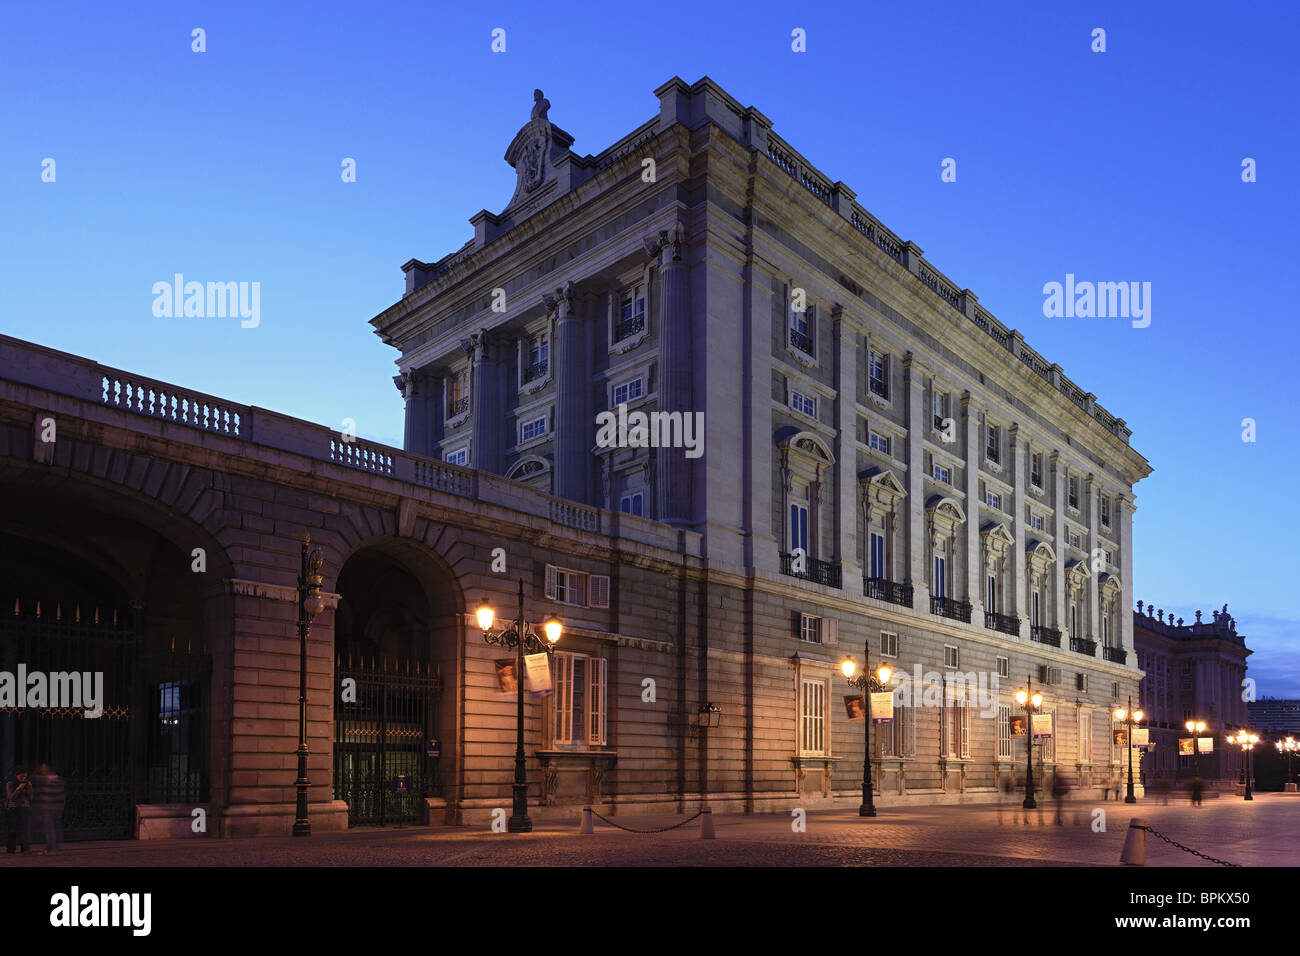 Palacio Real de Madrid, the biggest palace in Europe, Madrid, Spain - Stock Image